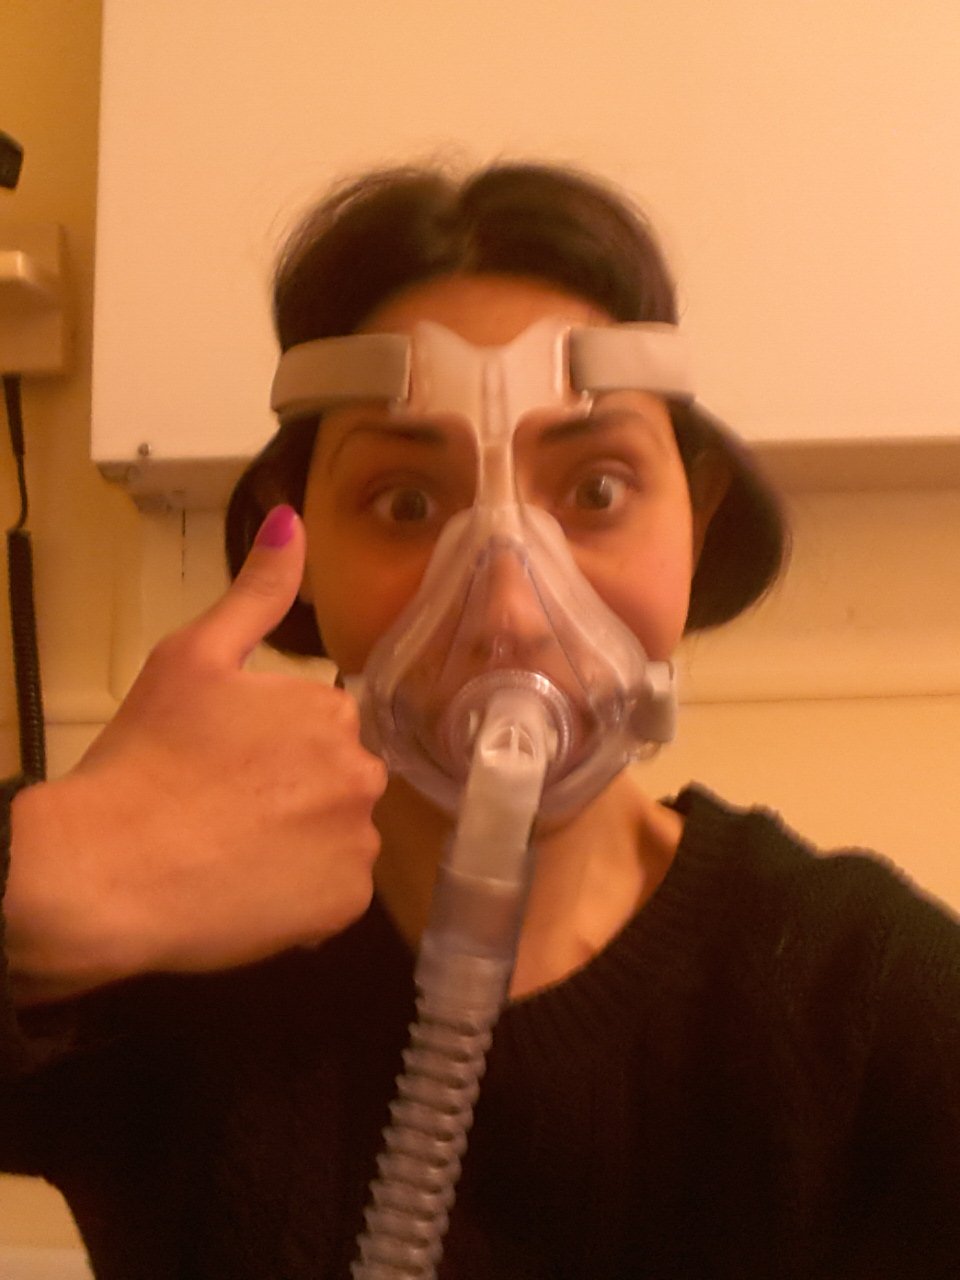 Veronica wearing her non-invasive ventilator prior to transplant